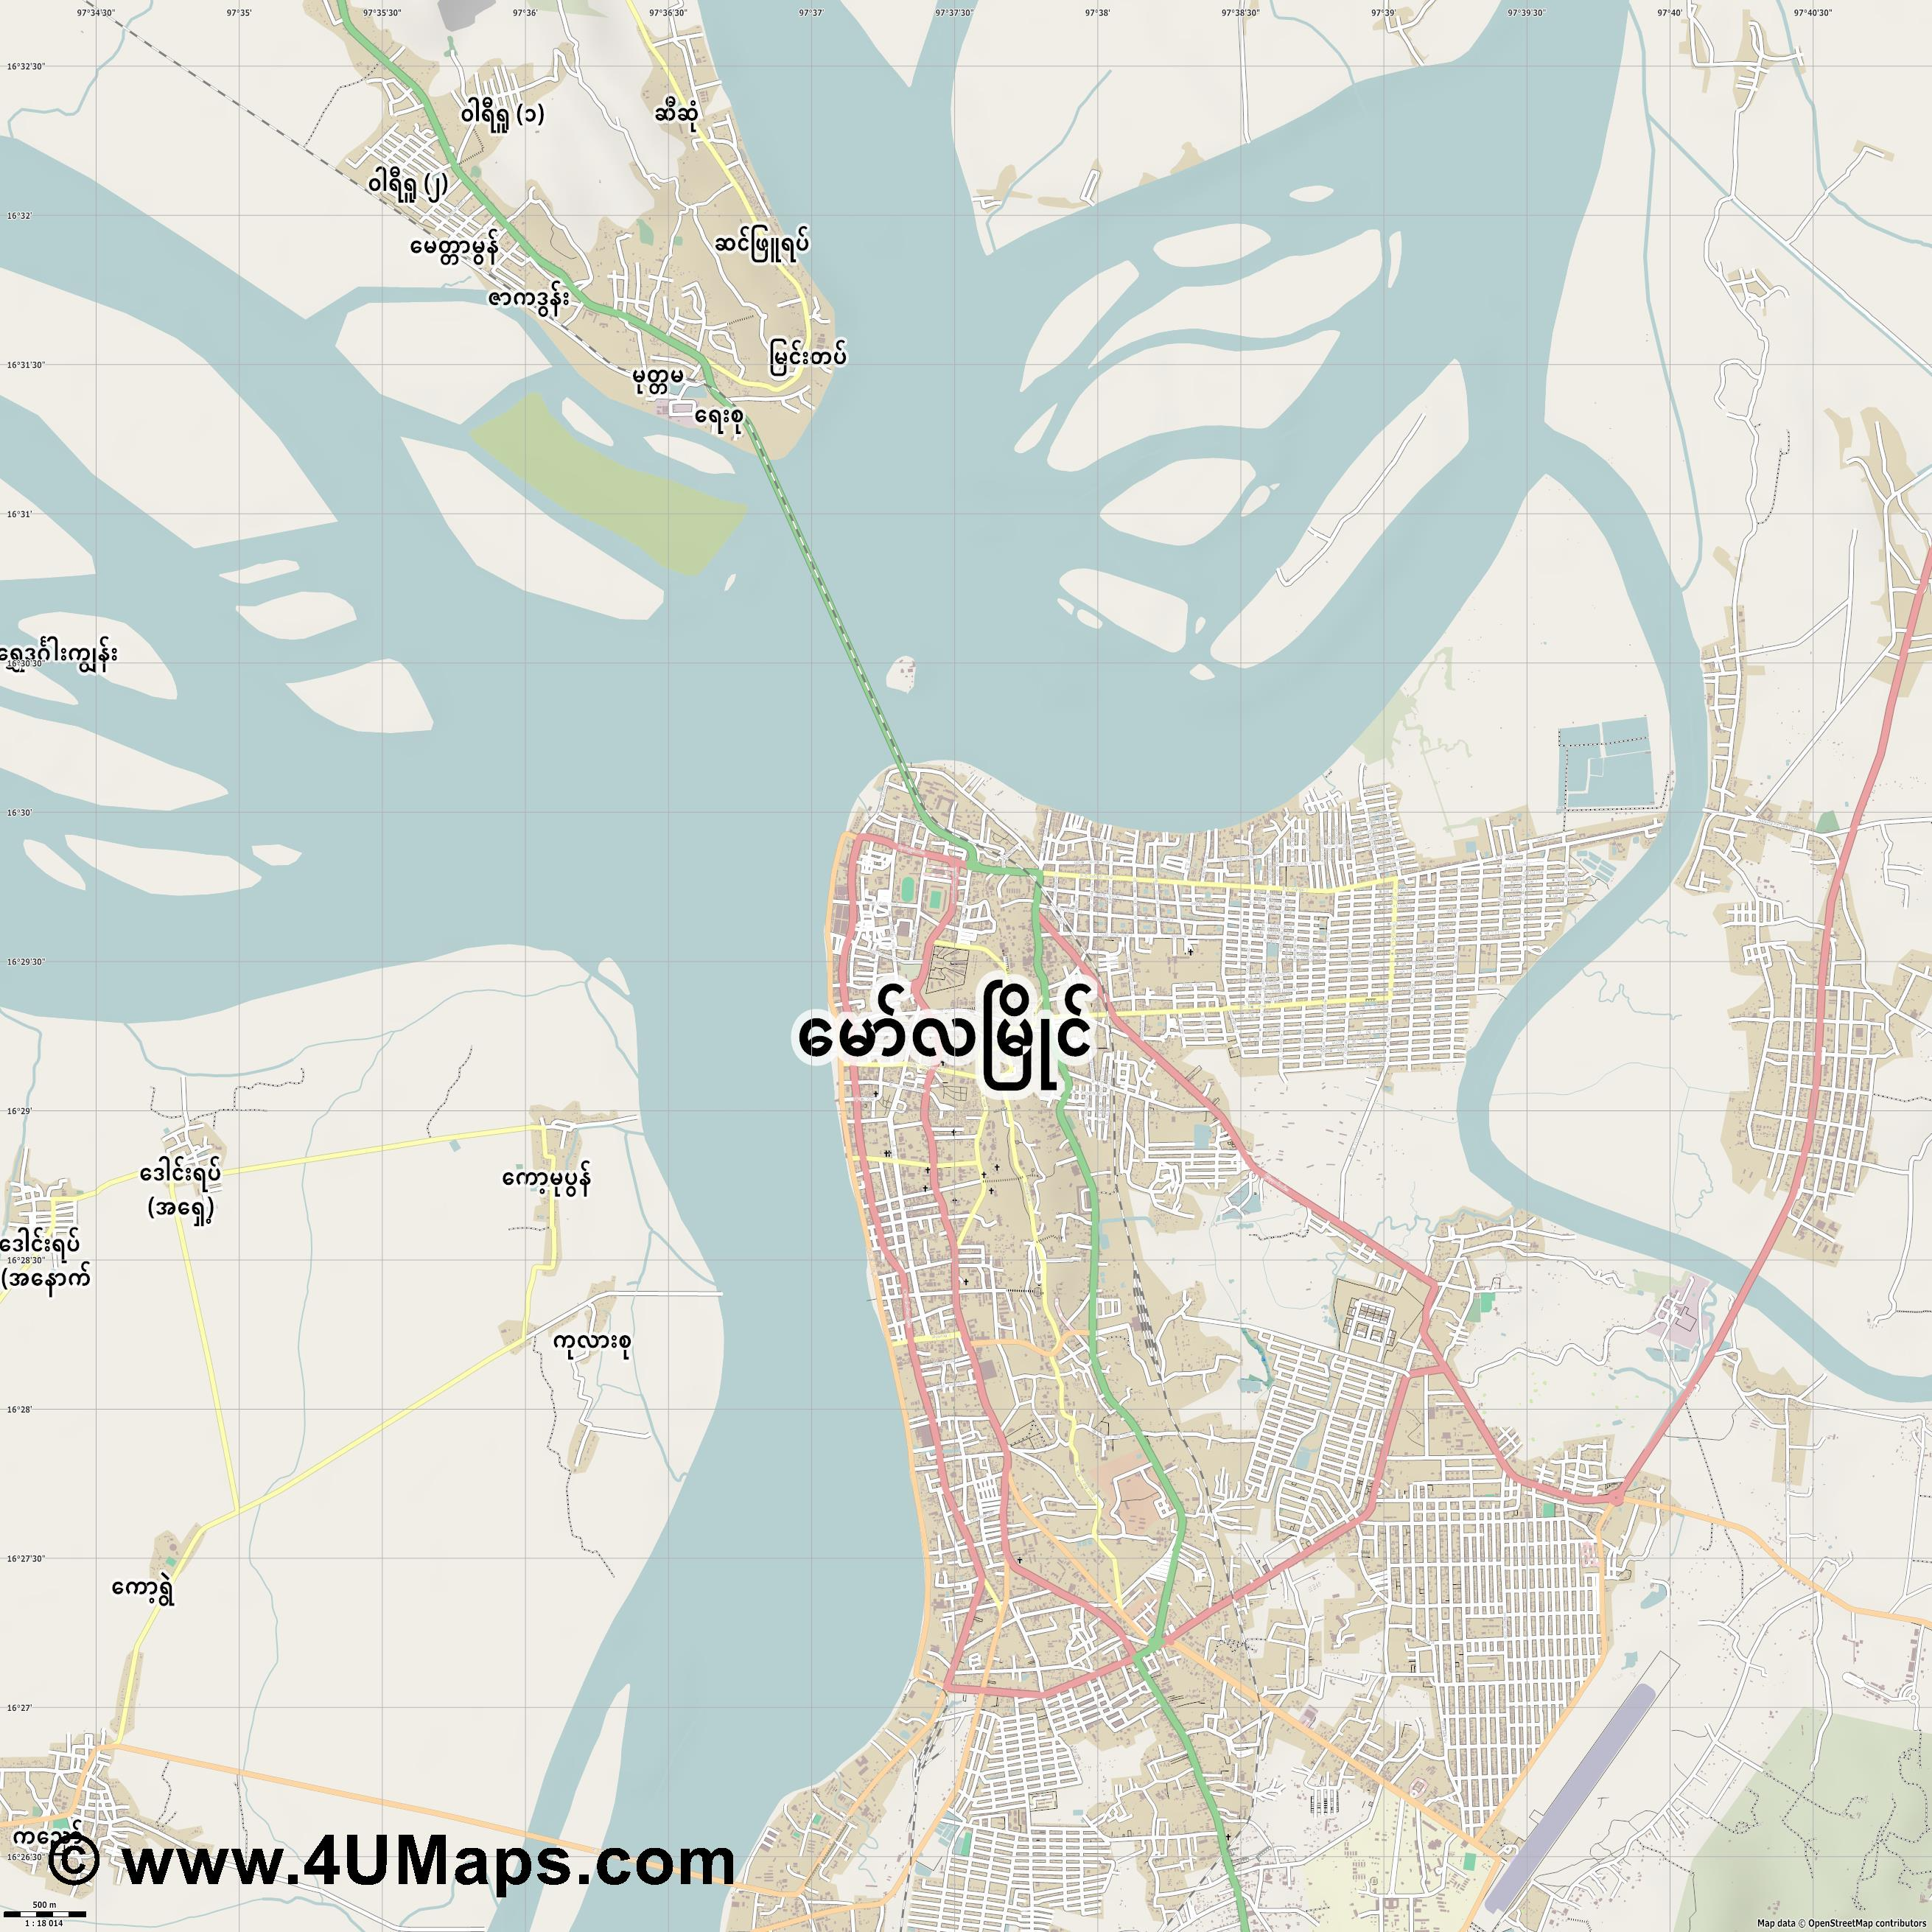 Mawlamying Mawlamyine Mawlamyaing  jpg ultra high detail preview vector city map